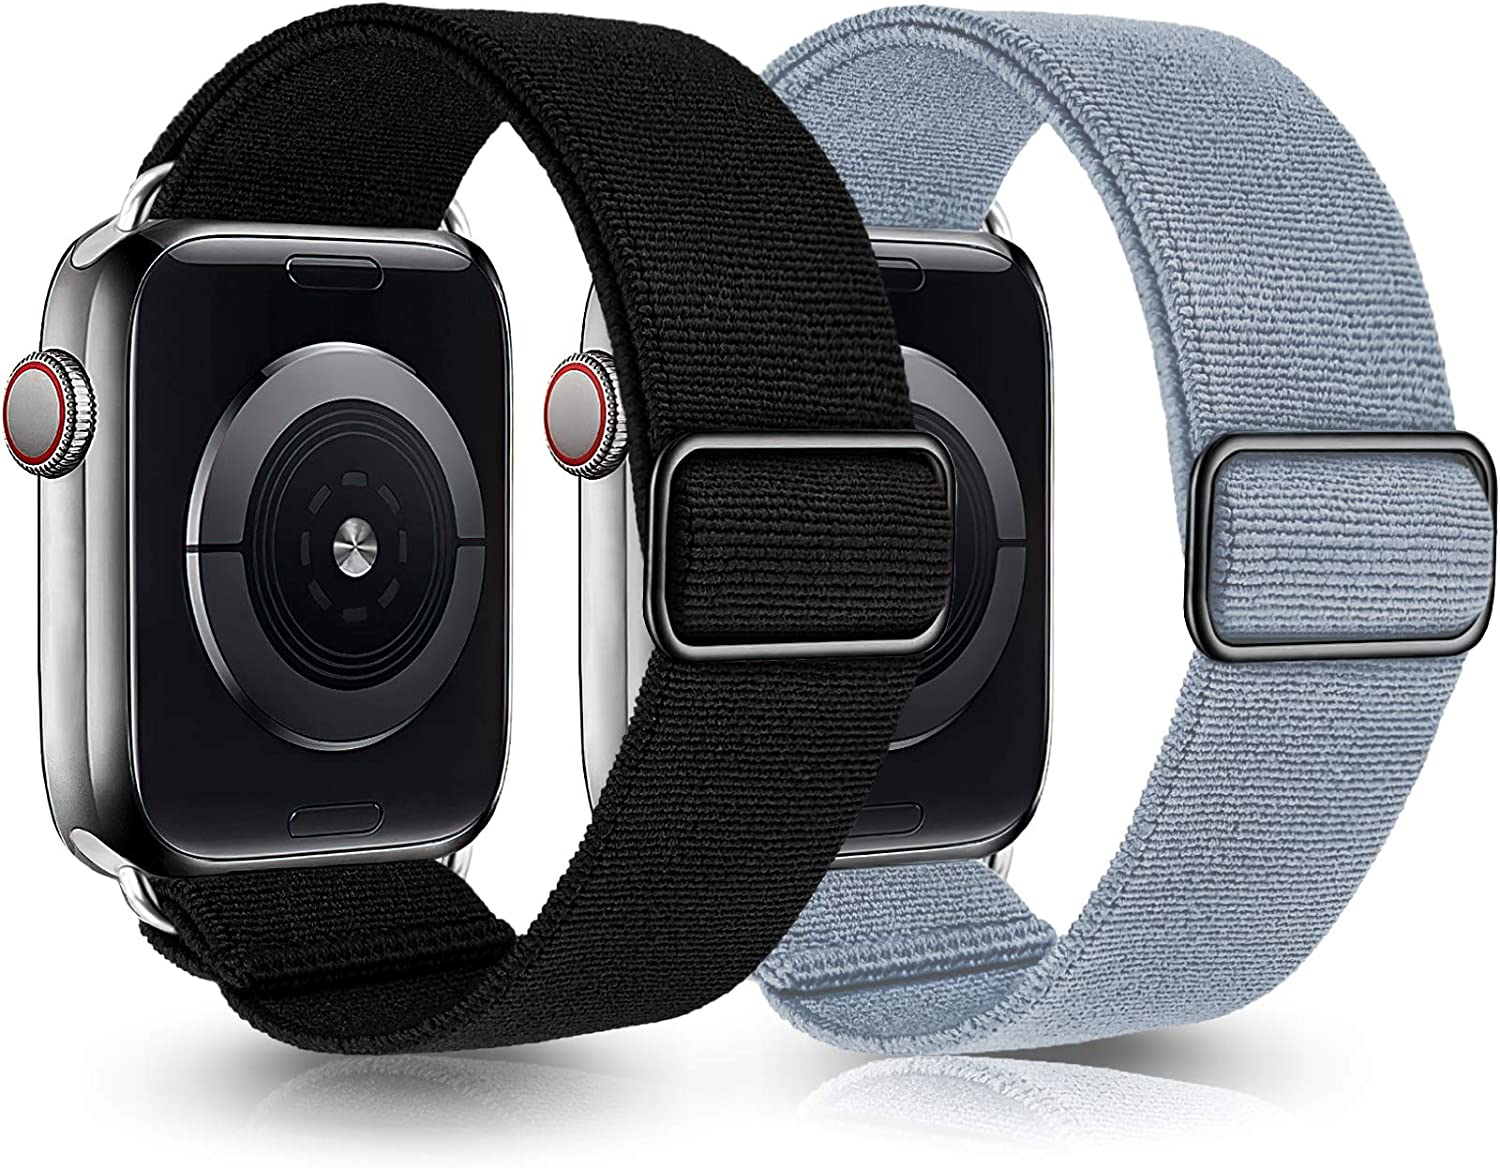 Greatfine Stretchy Solo Loop Strap Compatible with Apple Watch Bands 38mm 40mm,Elastic Nylon Braided Band&Adjustable Buckle Women Men Sport Watch Bands for iWatch Series 6/5/4/3/2/1 SE(Black+Fog Blue)